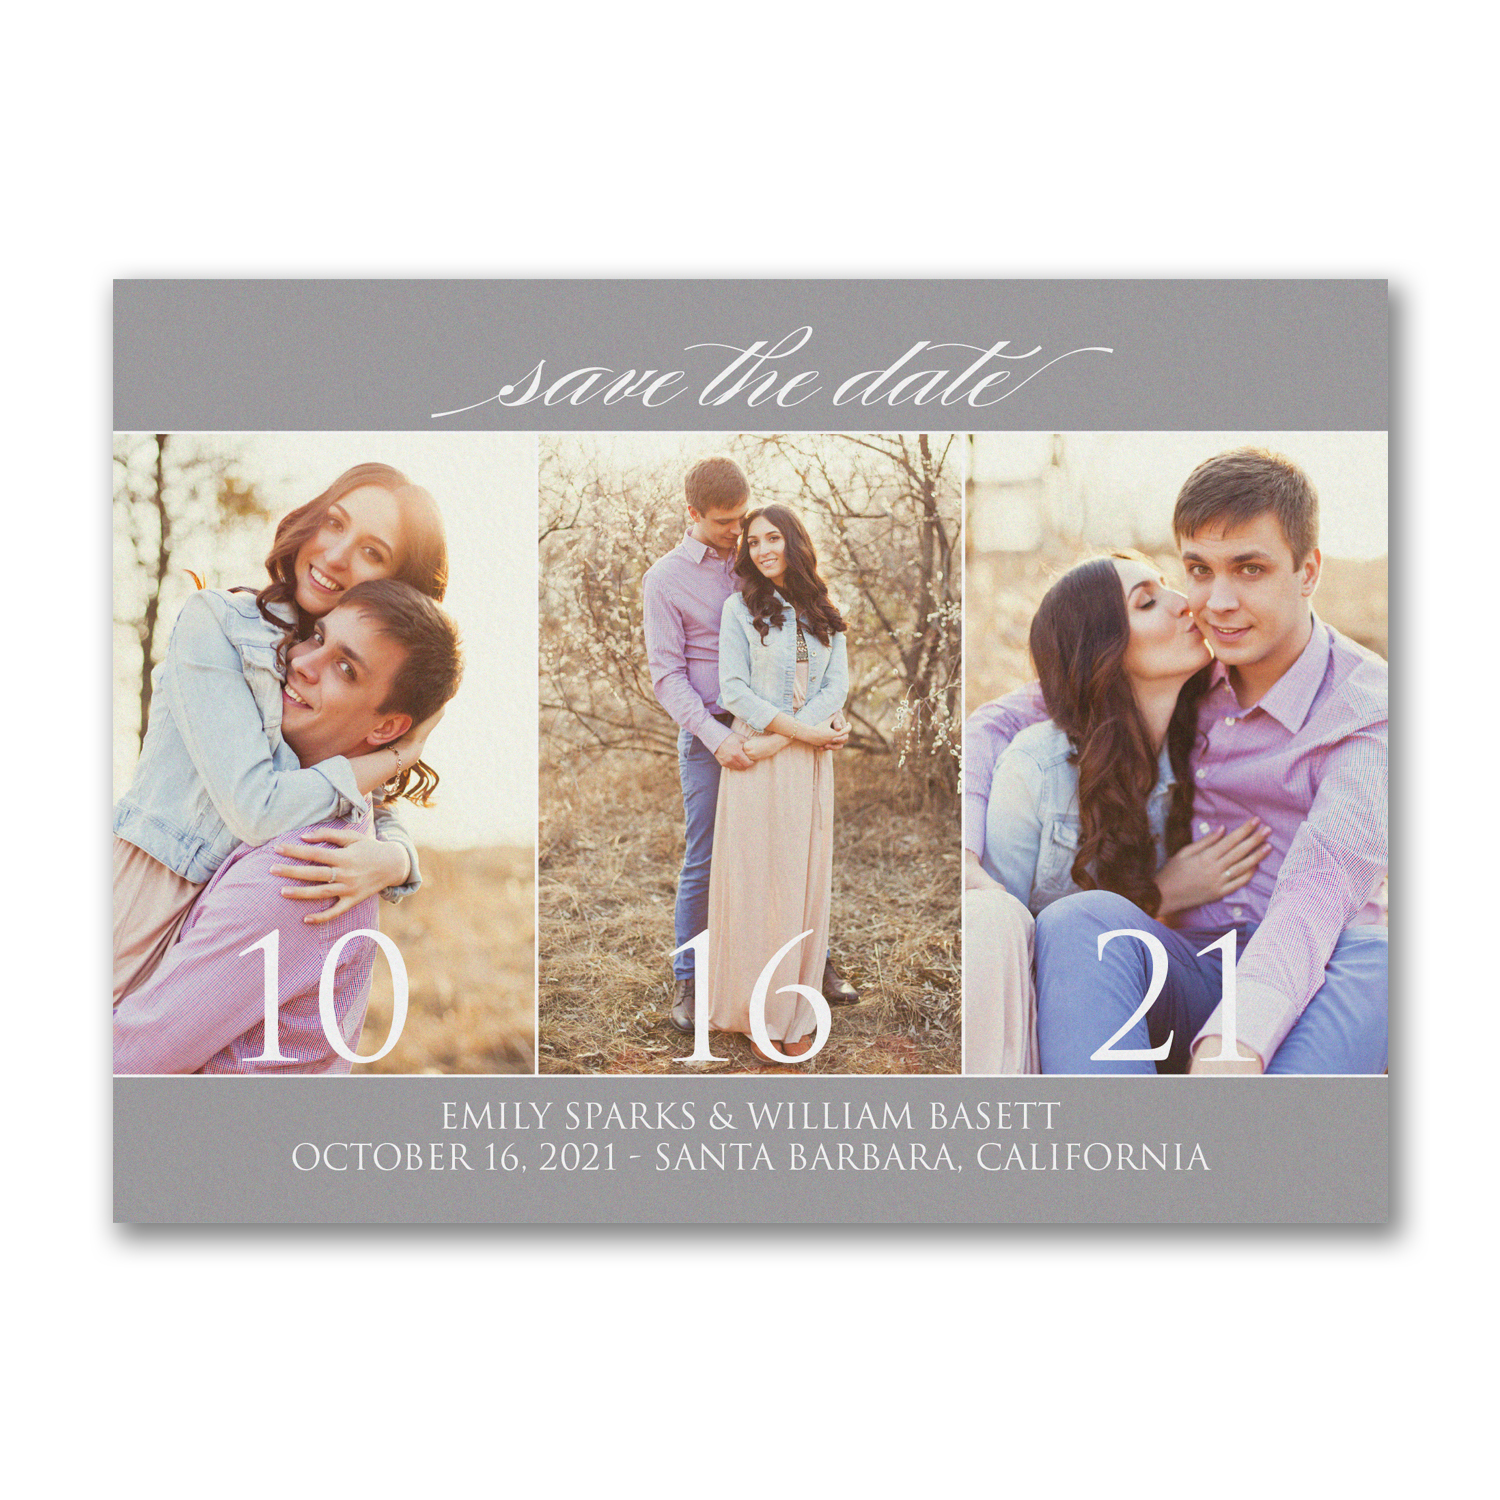 special date photo save the date carlson craft